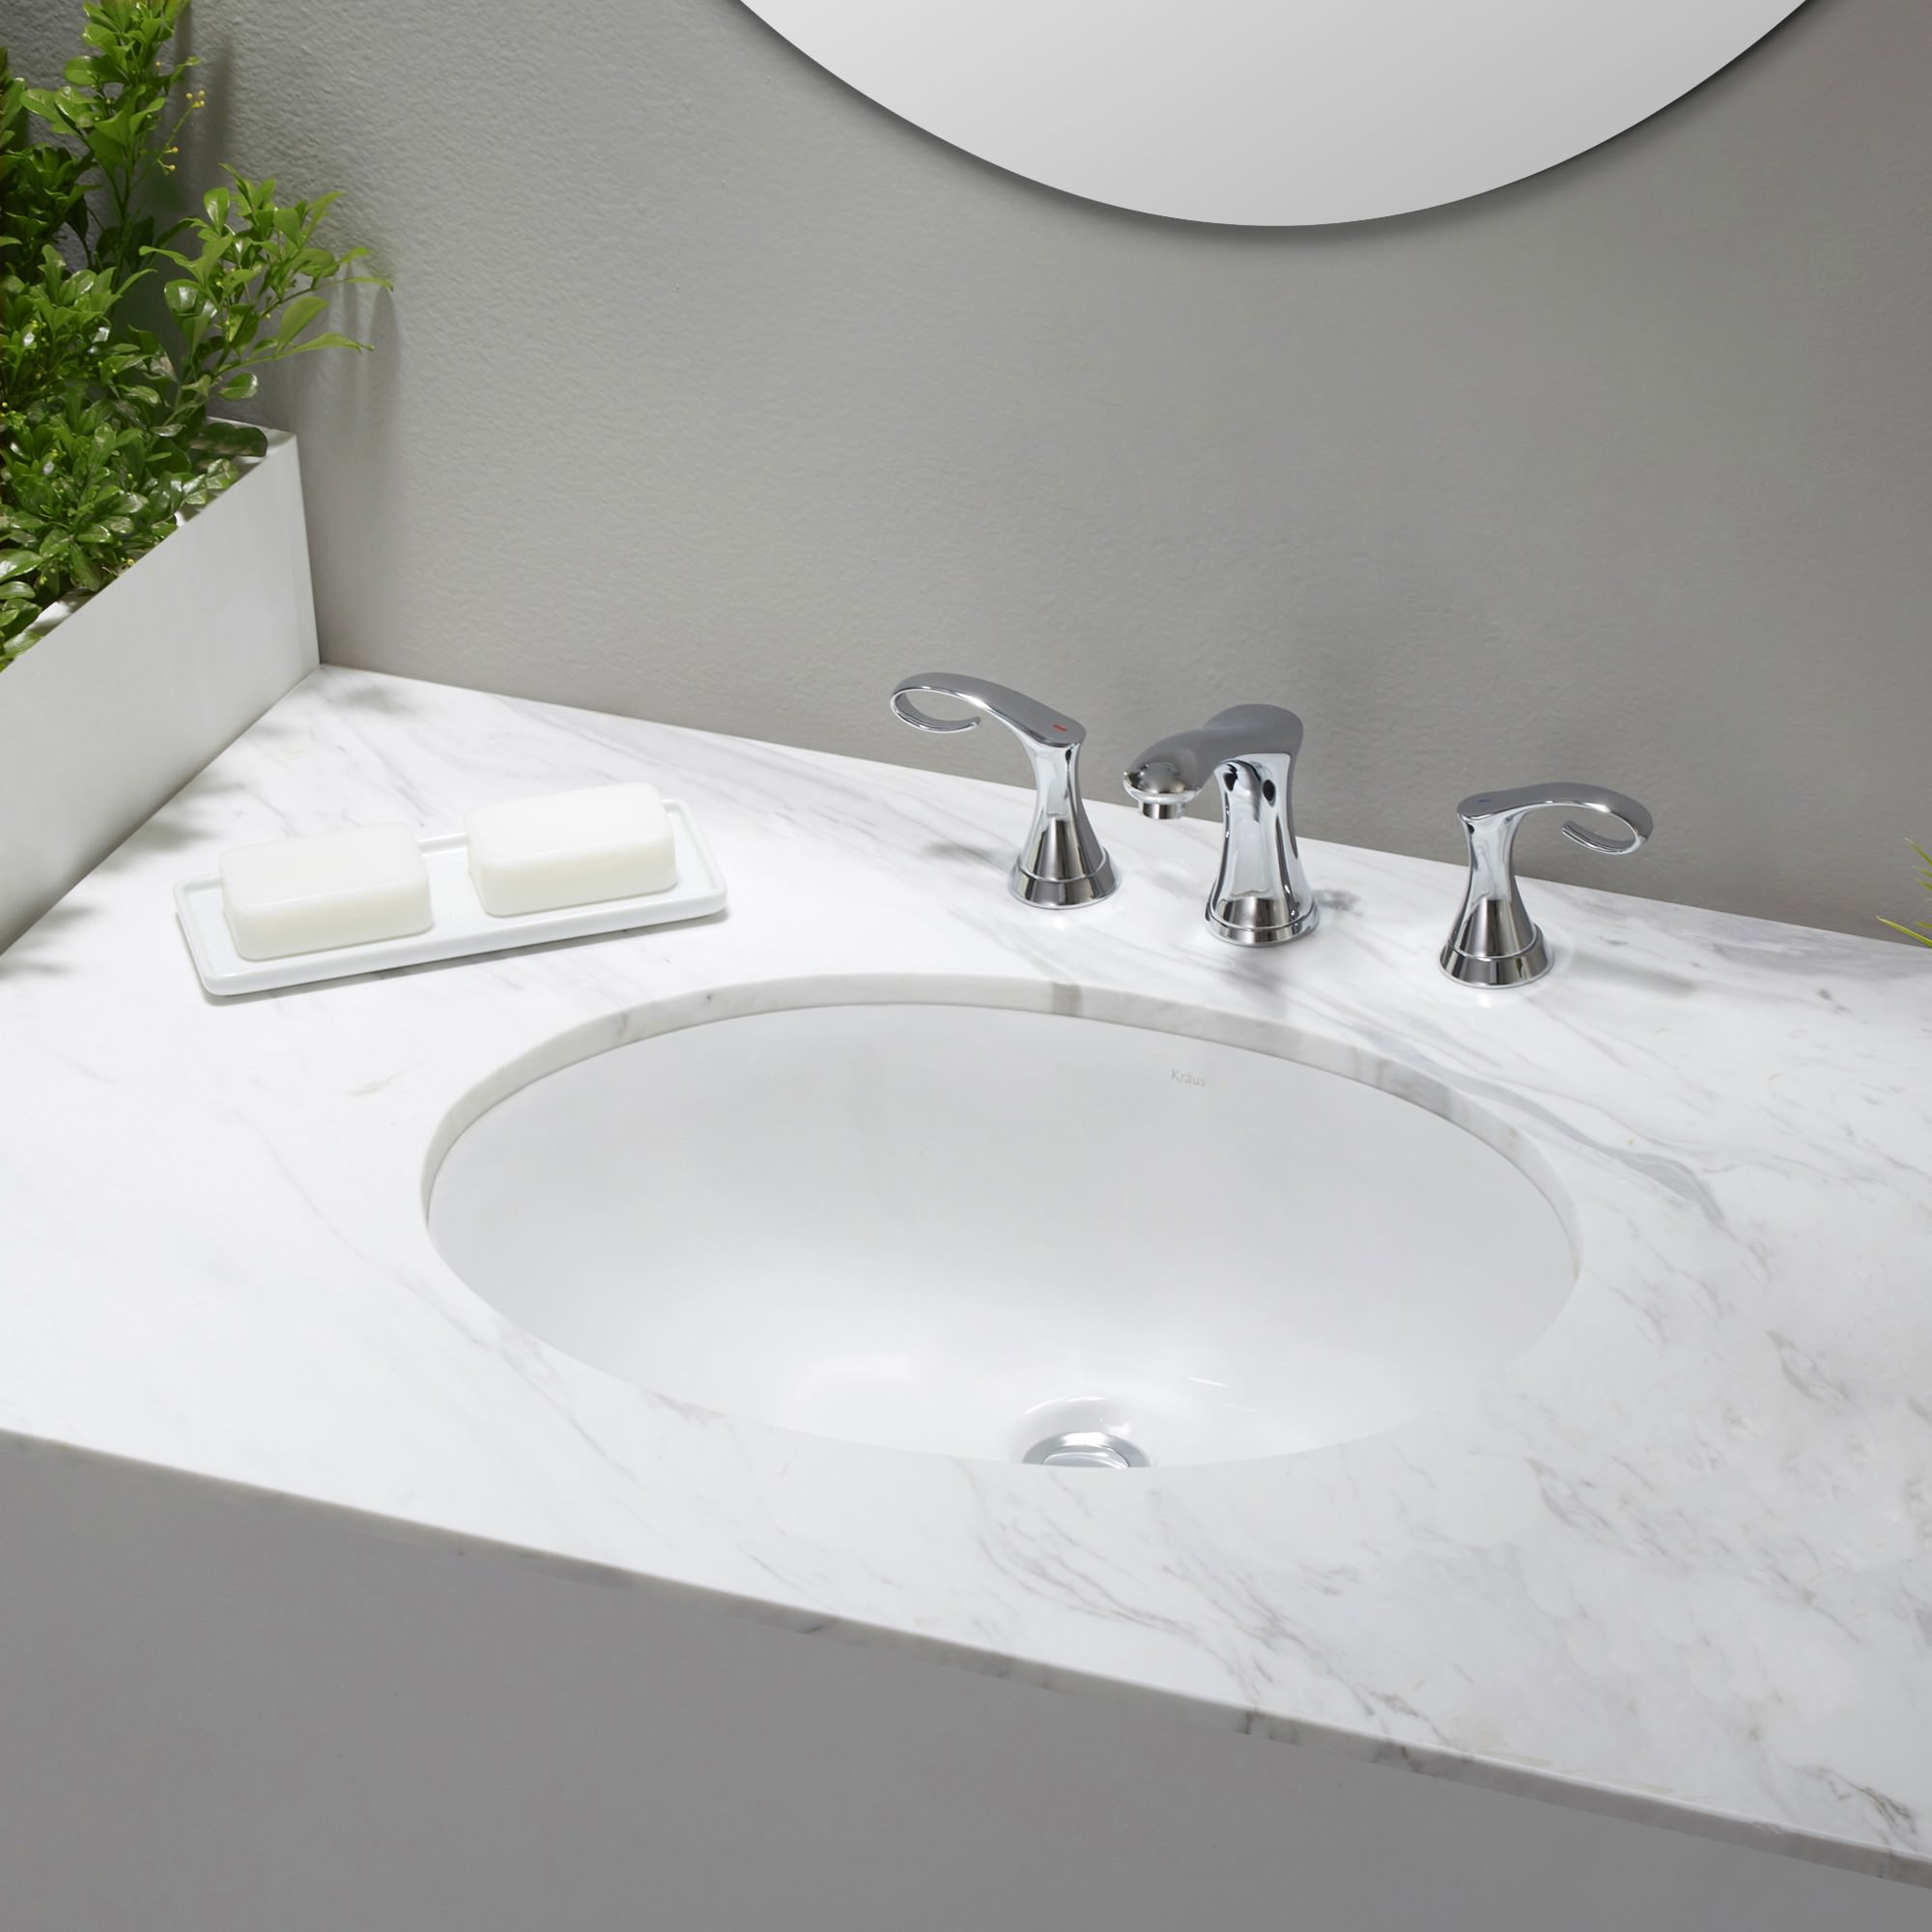 Oval Porcelain Undermount Sink Countertops Cost Reviews